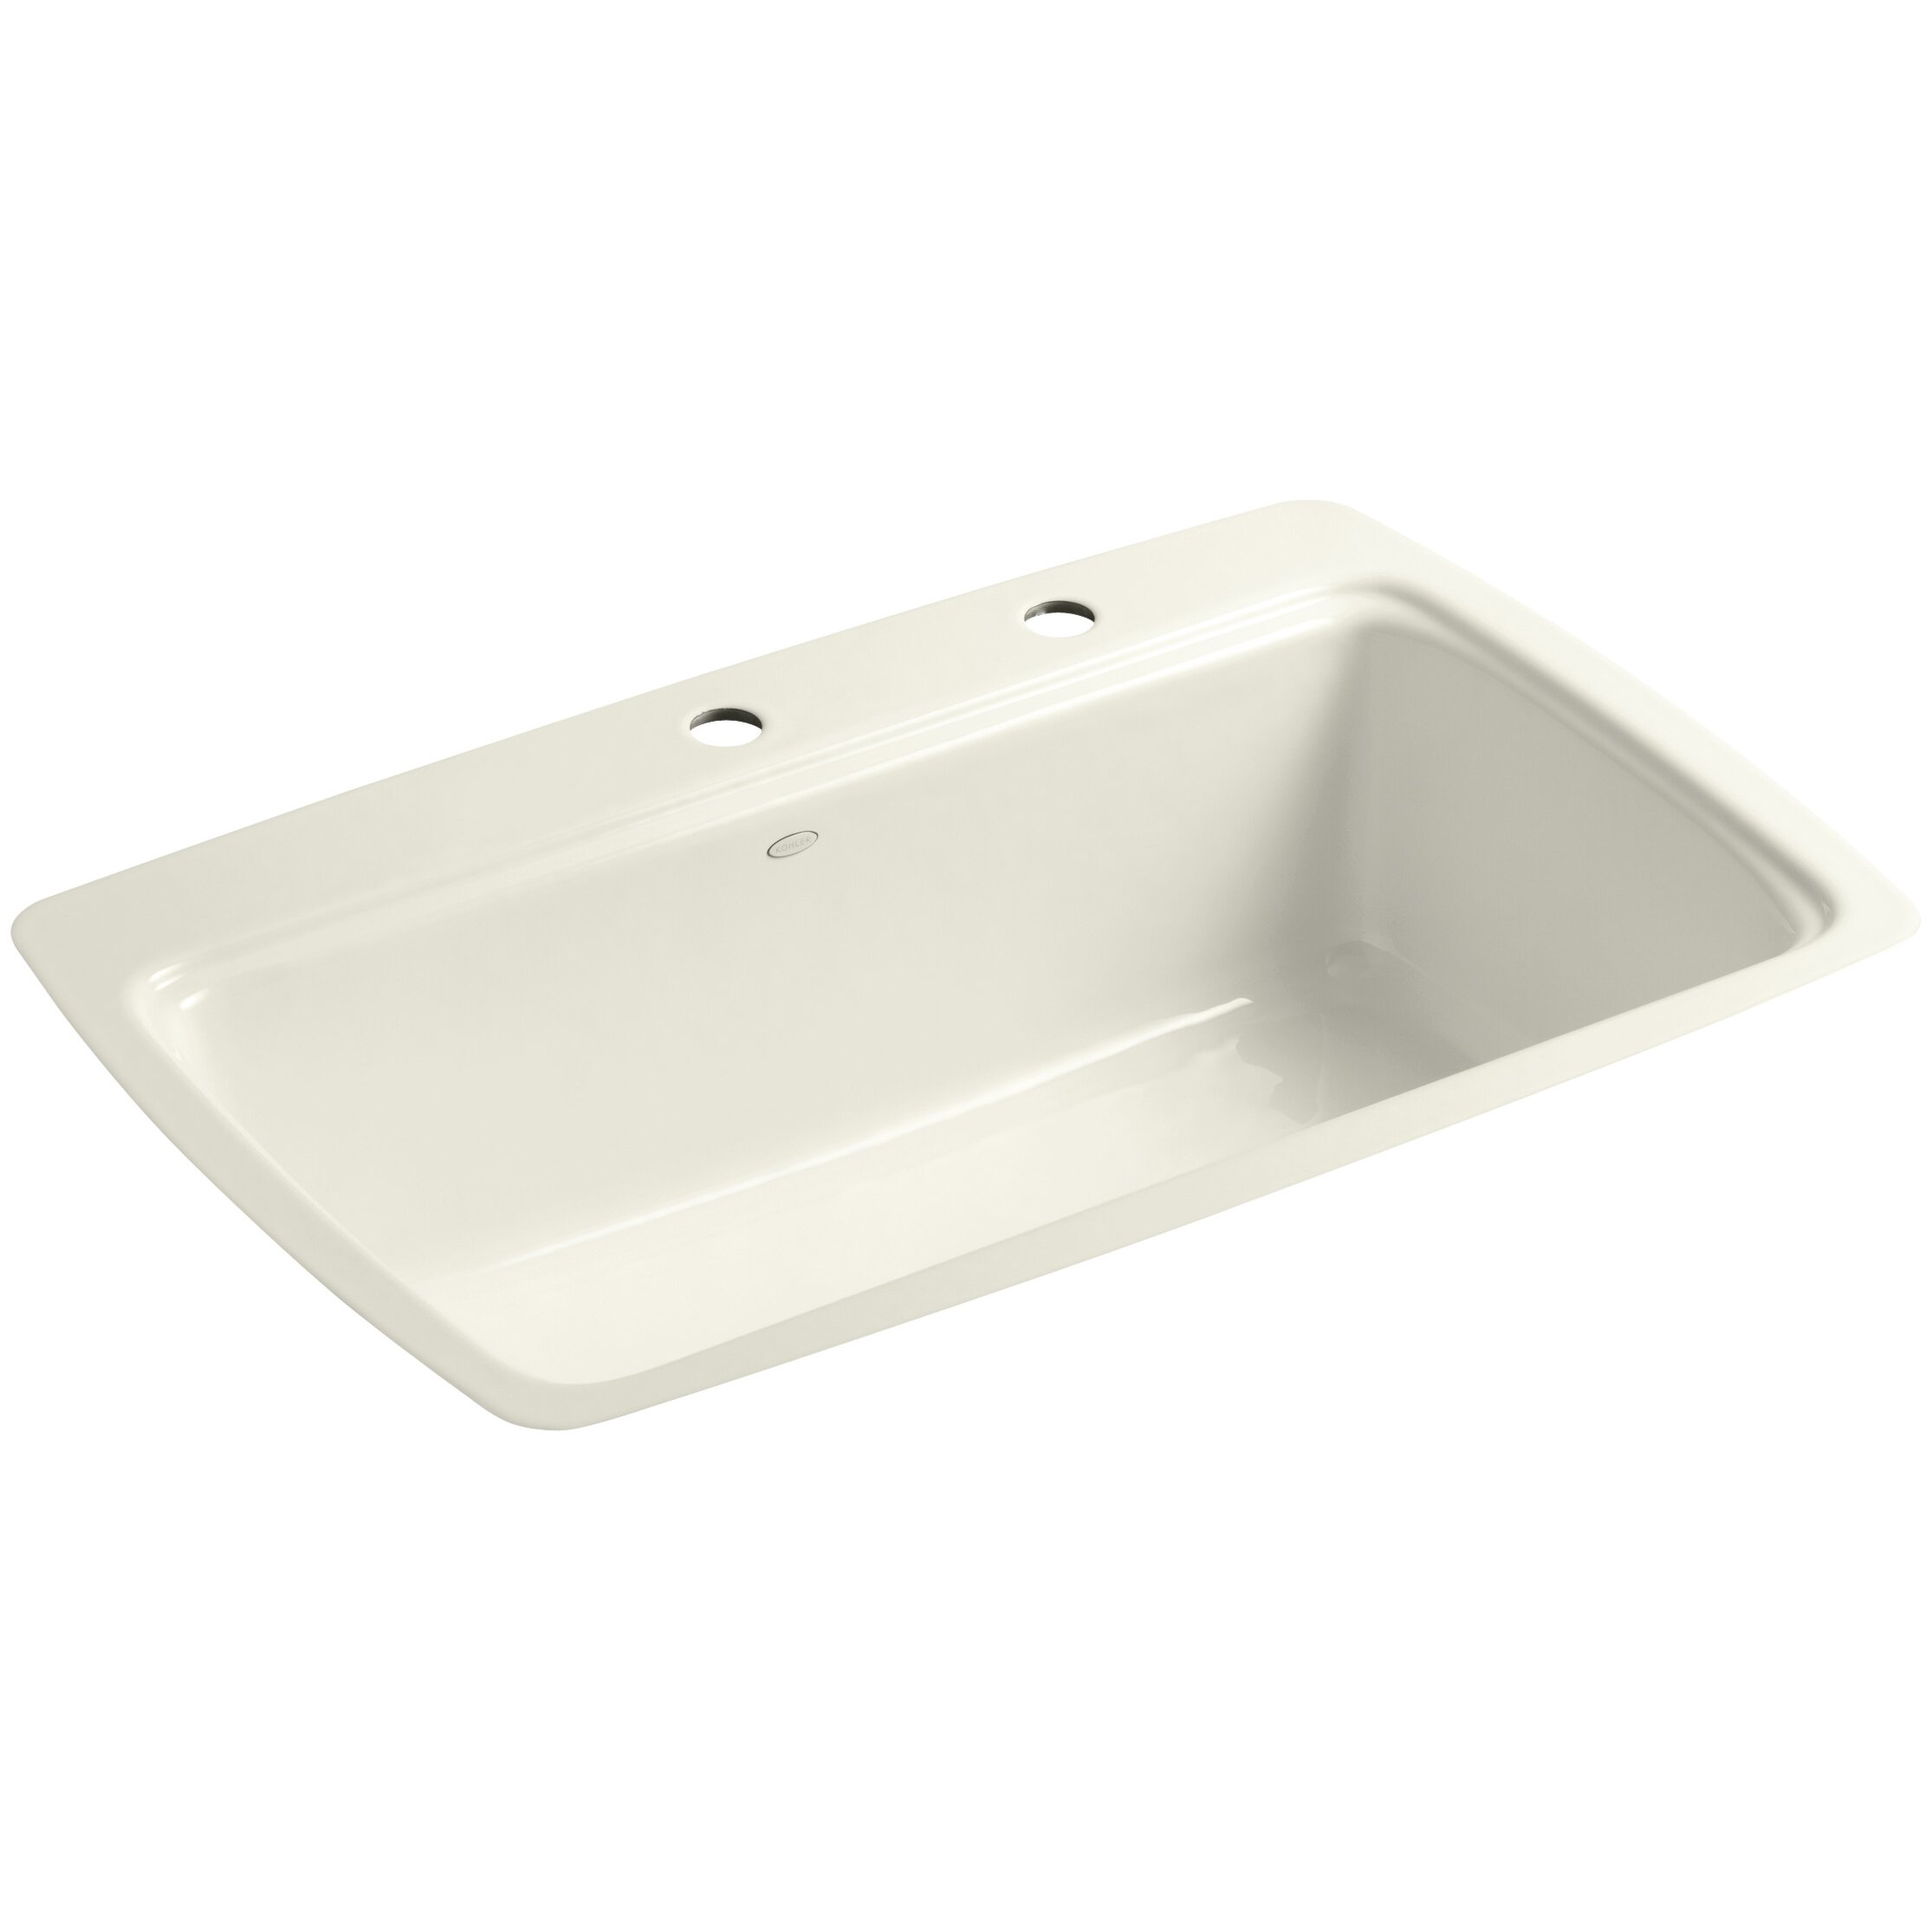 Kohler Cape Dory Tile-In Single-Bowl Kitchen Sink With 2